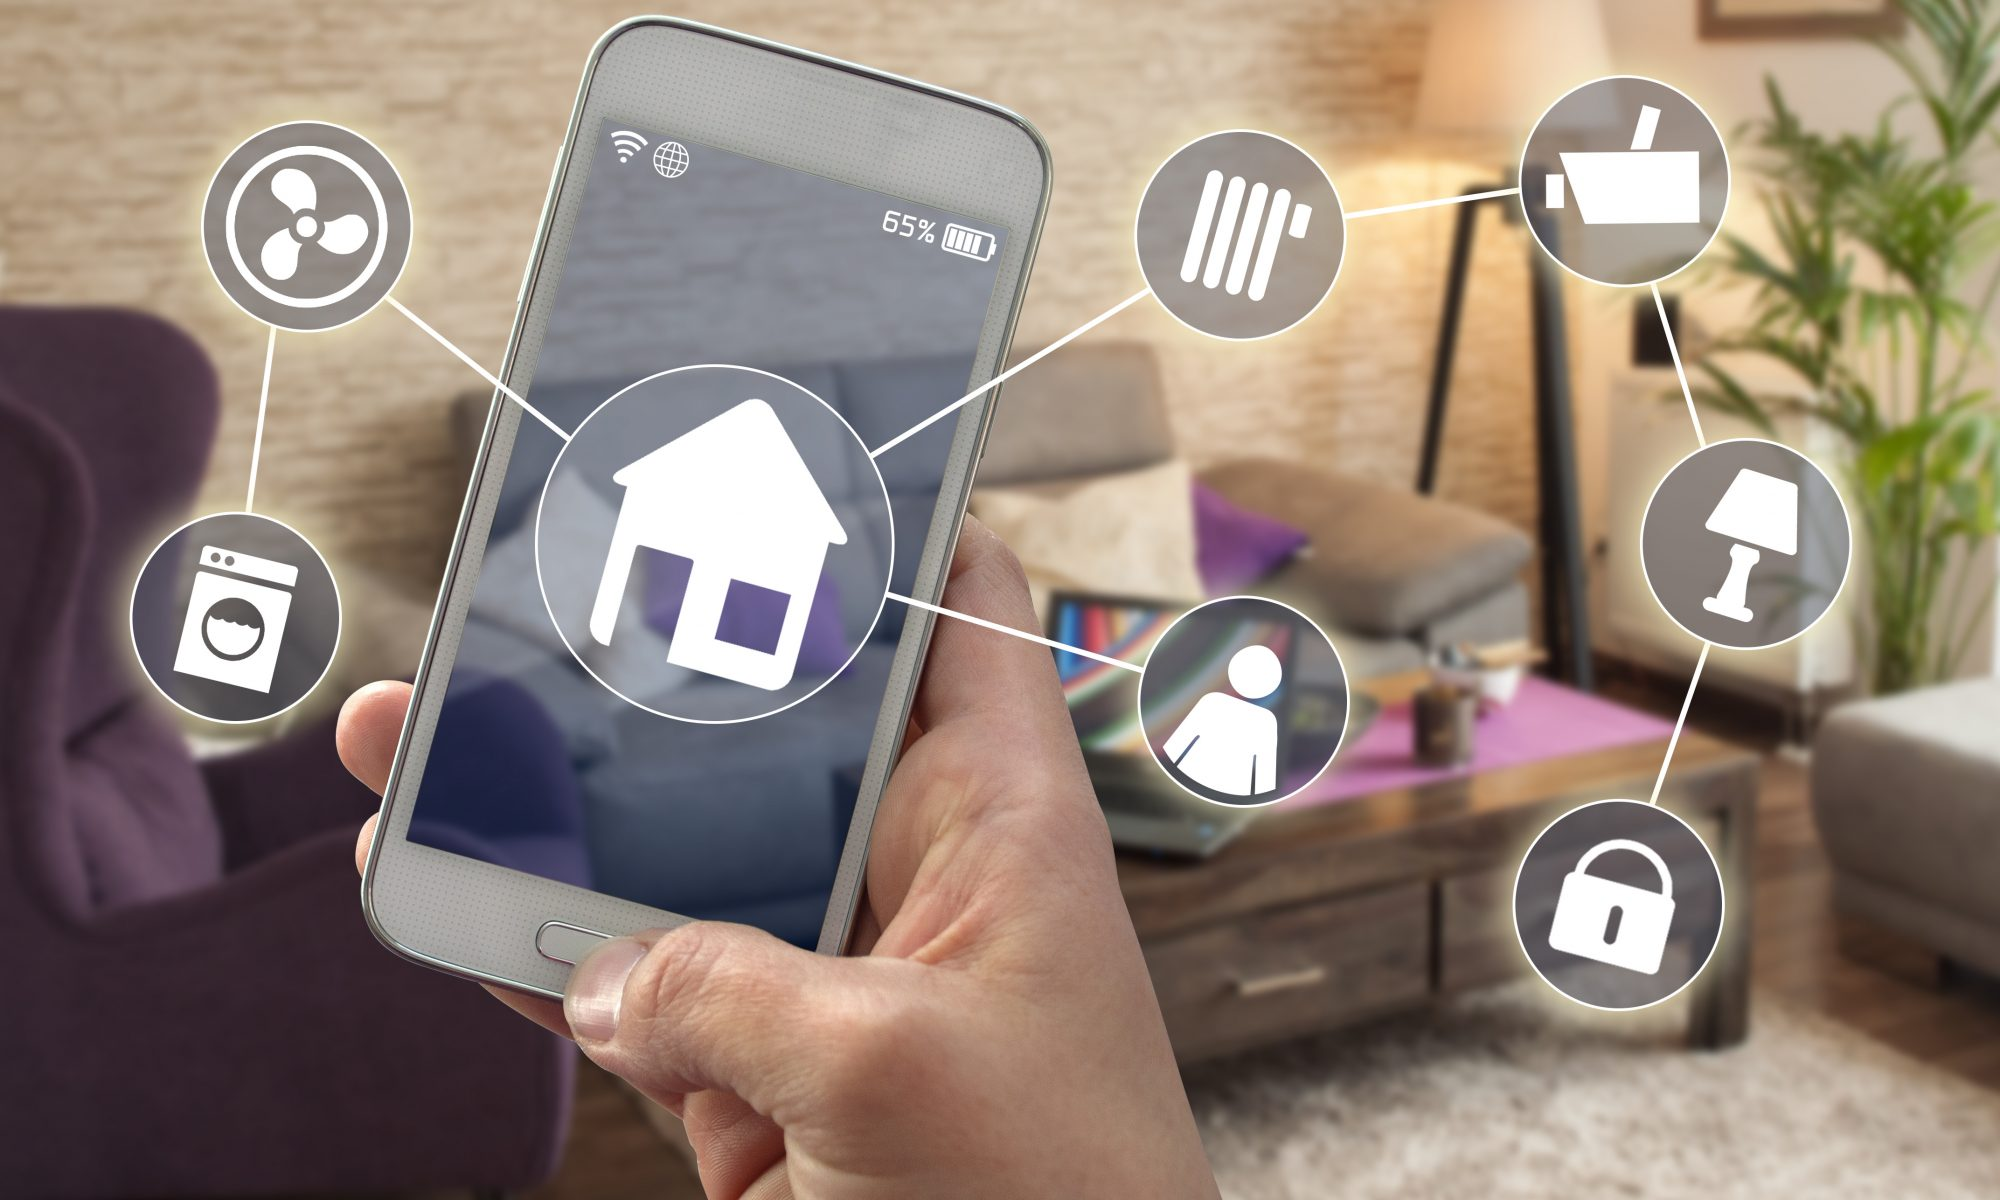 DS ELEC 24143442 Smarthome Smartphone Hausautomatioon Smart Home 2000x1200